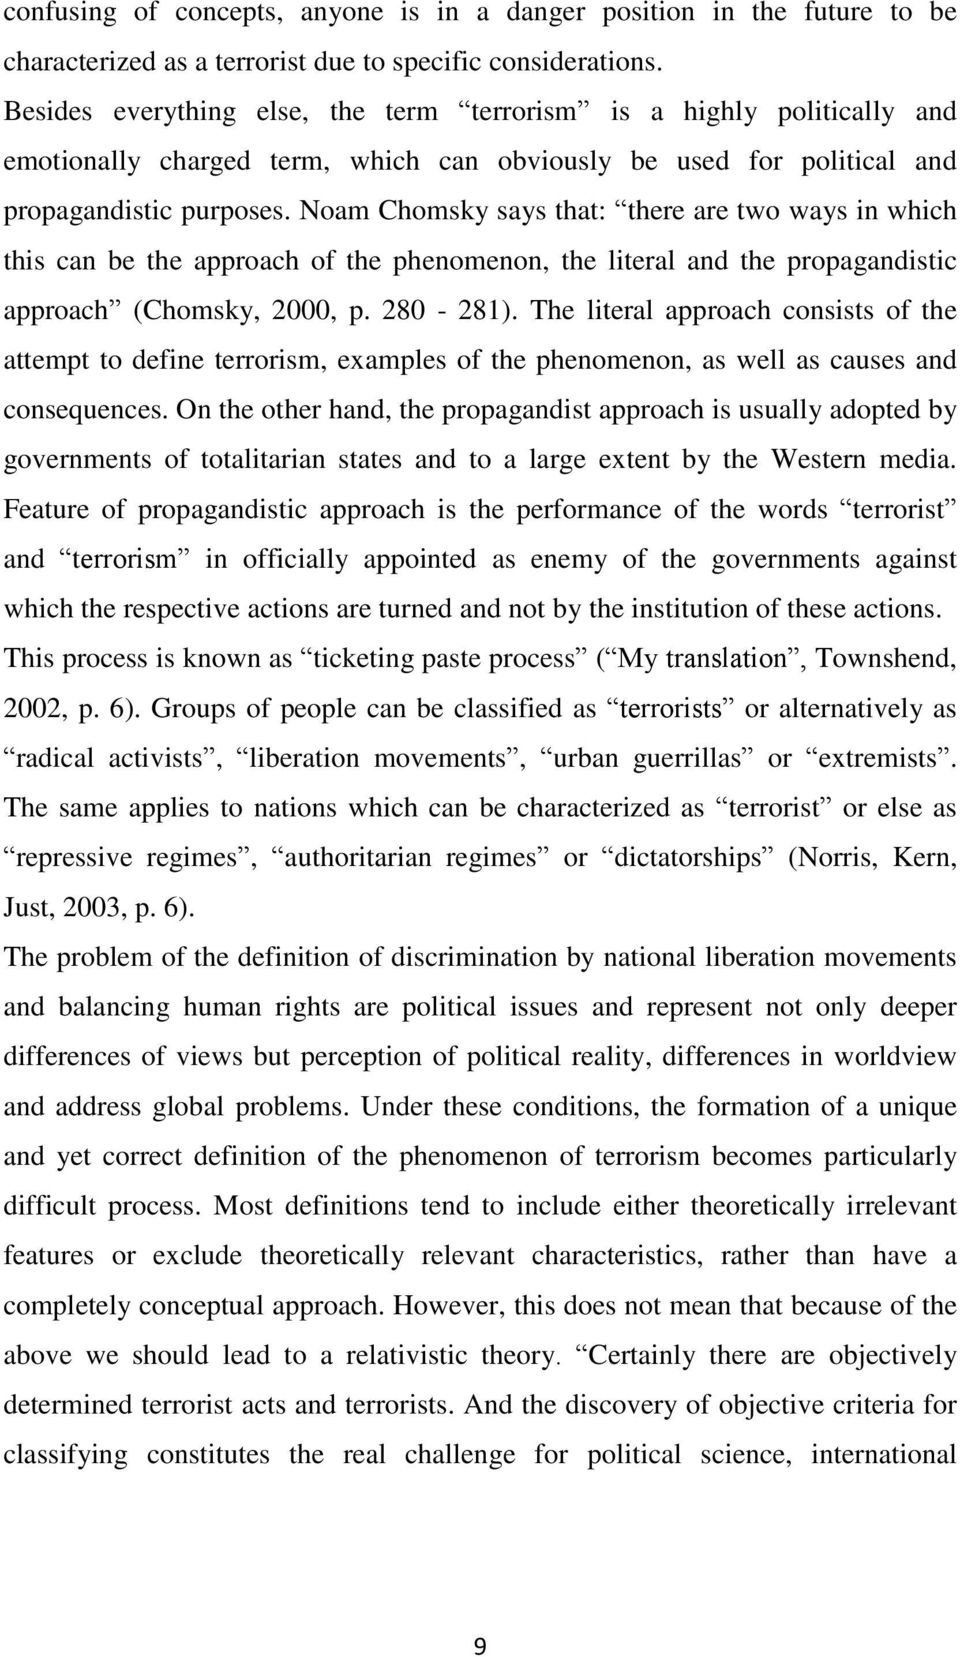 Noam Chomsky says that: there are two ways in which this can be the approach of the phenomenon, the literal and the propagandistic approach (Chomsky, 2000, p. 280-281).